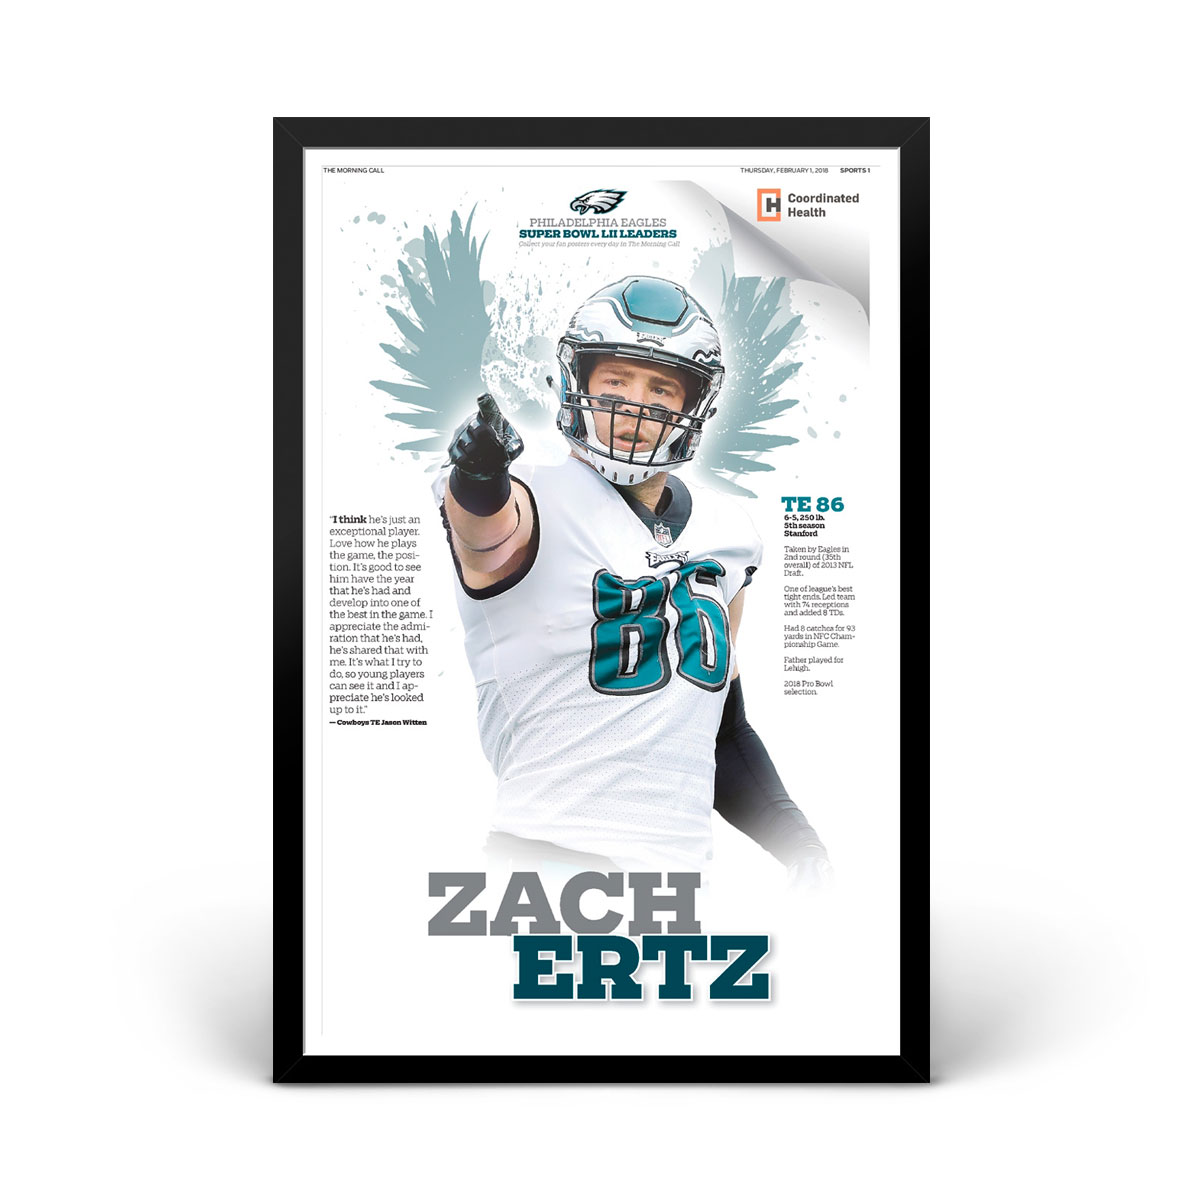 Zach Ertz Philadelphia Eagles Player Print 1/31/2018